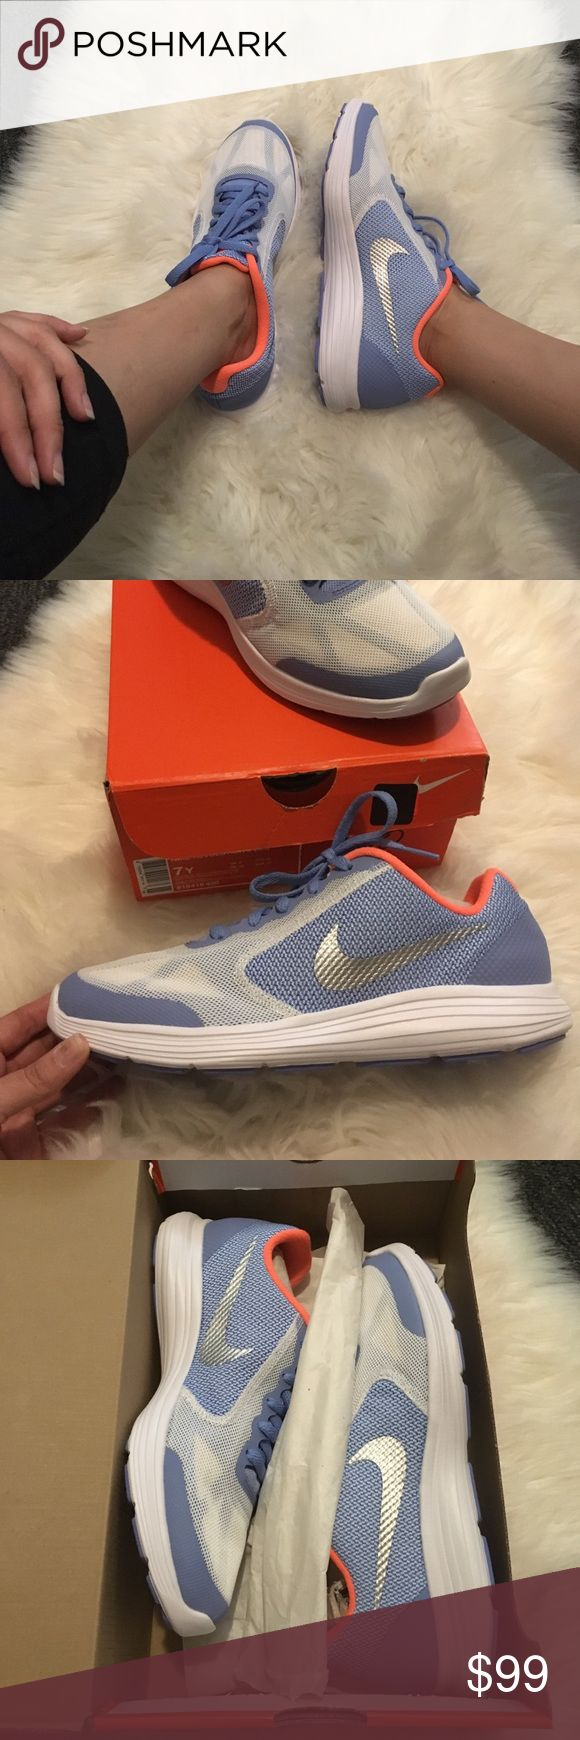 580b55a327e New Nike Revolution 3 Athletic Shoes New with Box-Sz  7 (women s)